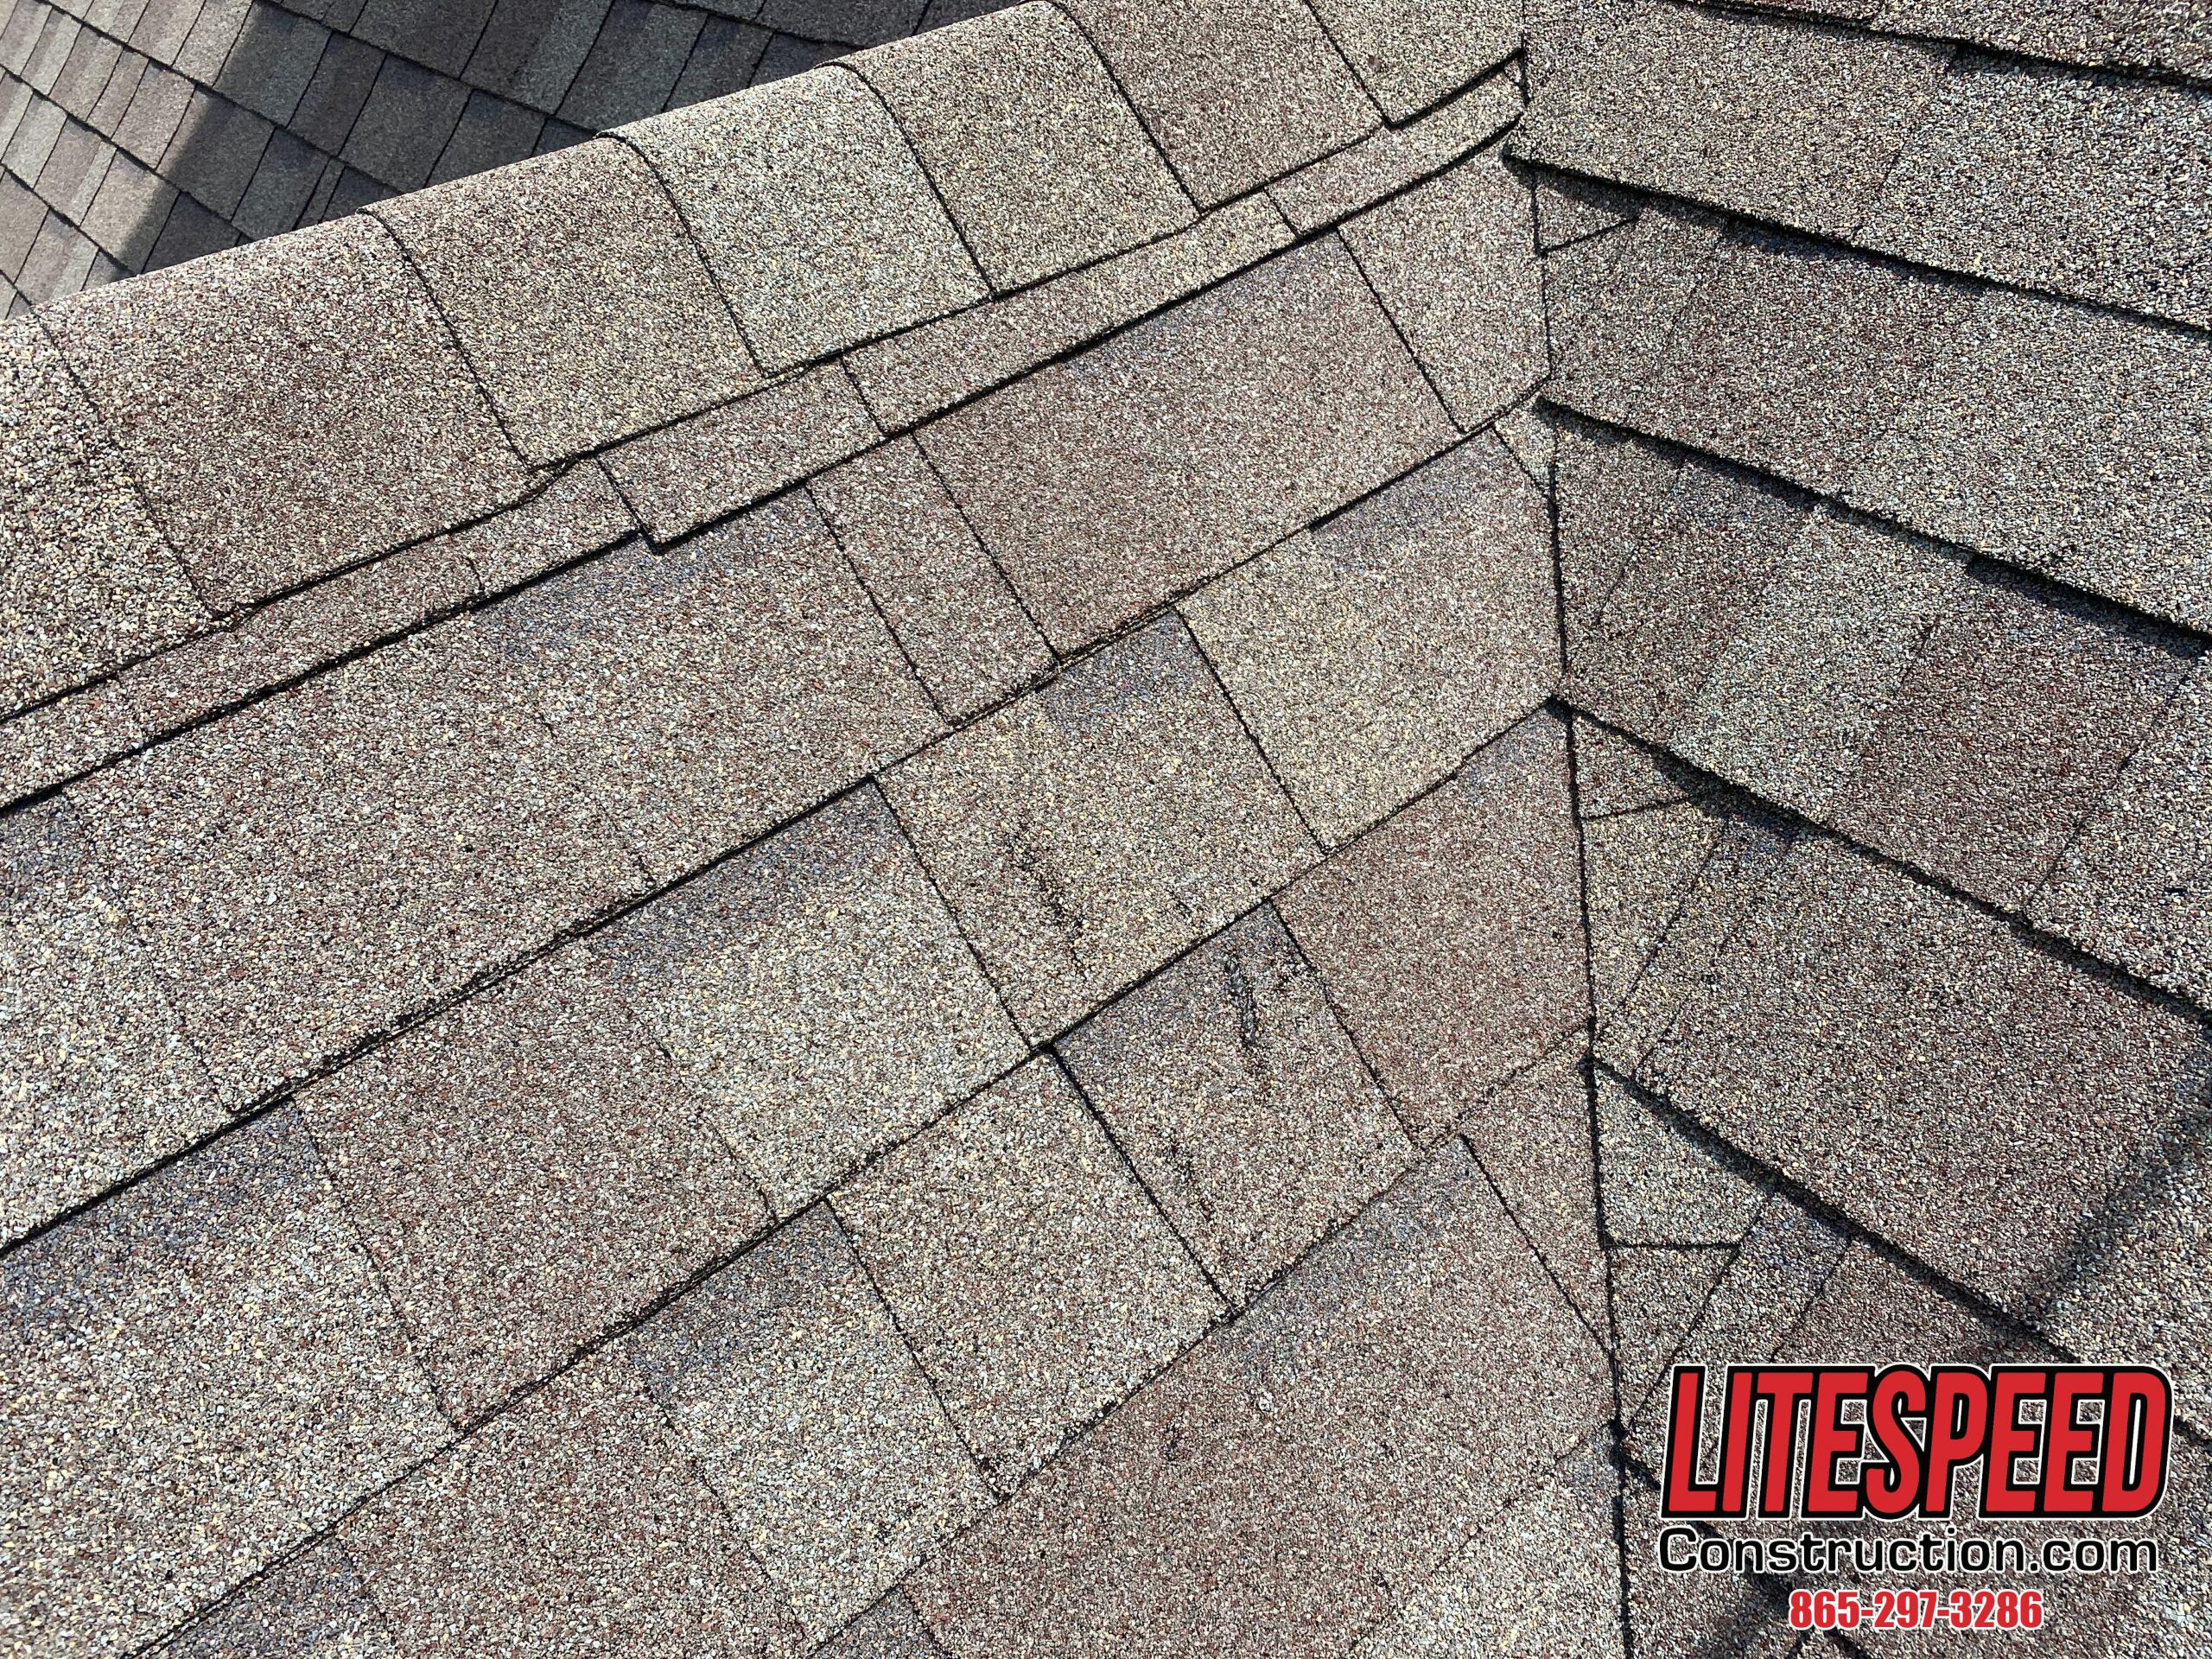 This is a picture of shingles with a little bit of damage